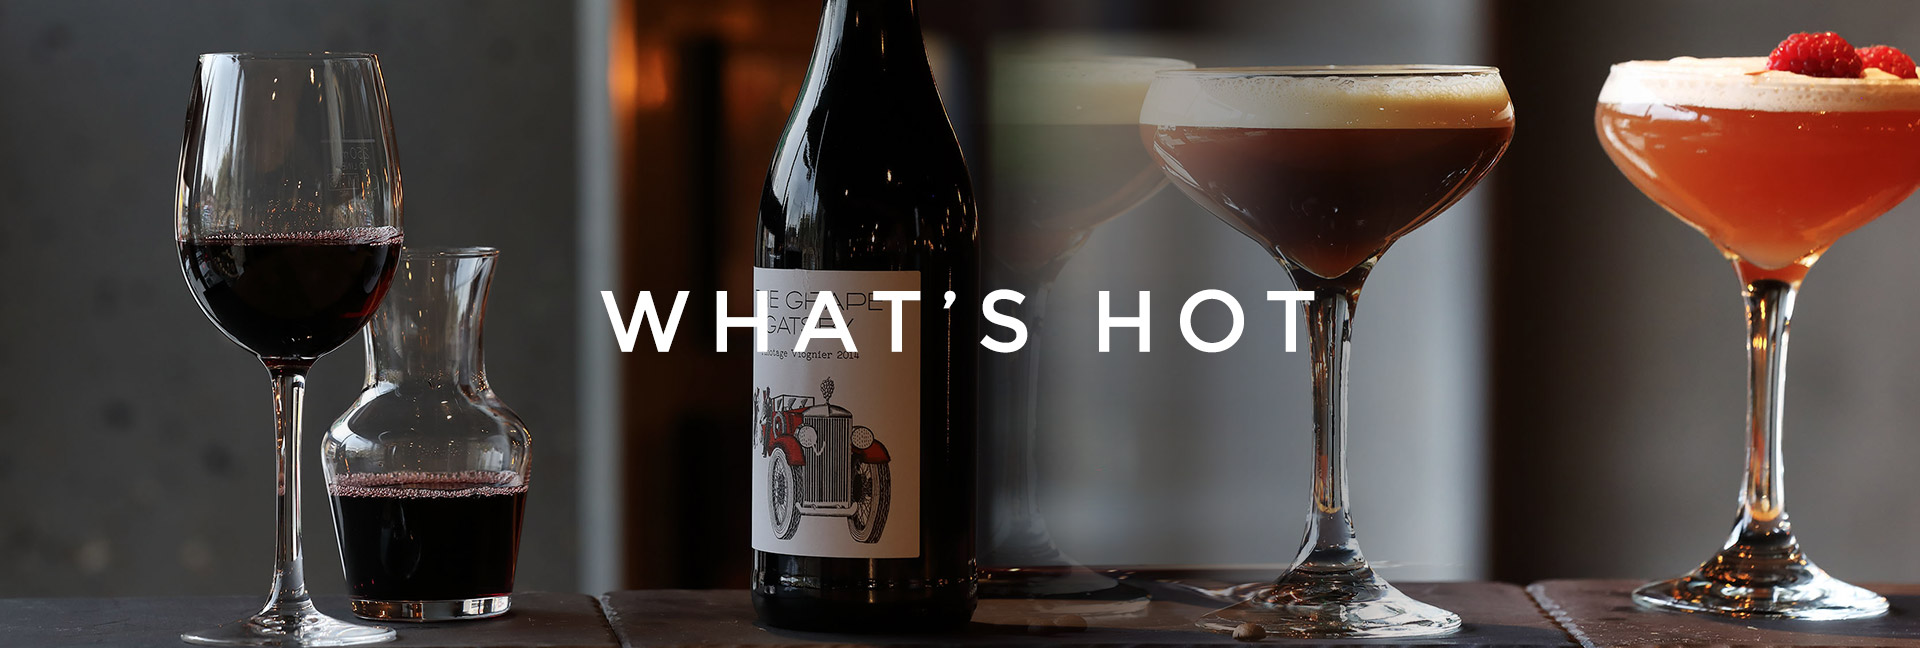 What's Hot at All Bar One Canary Wharf